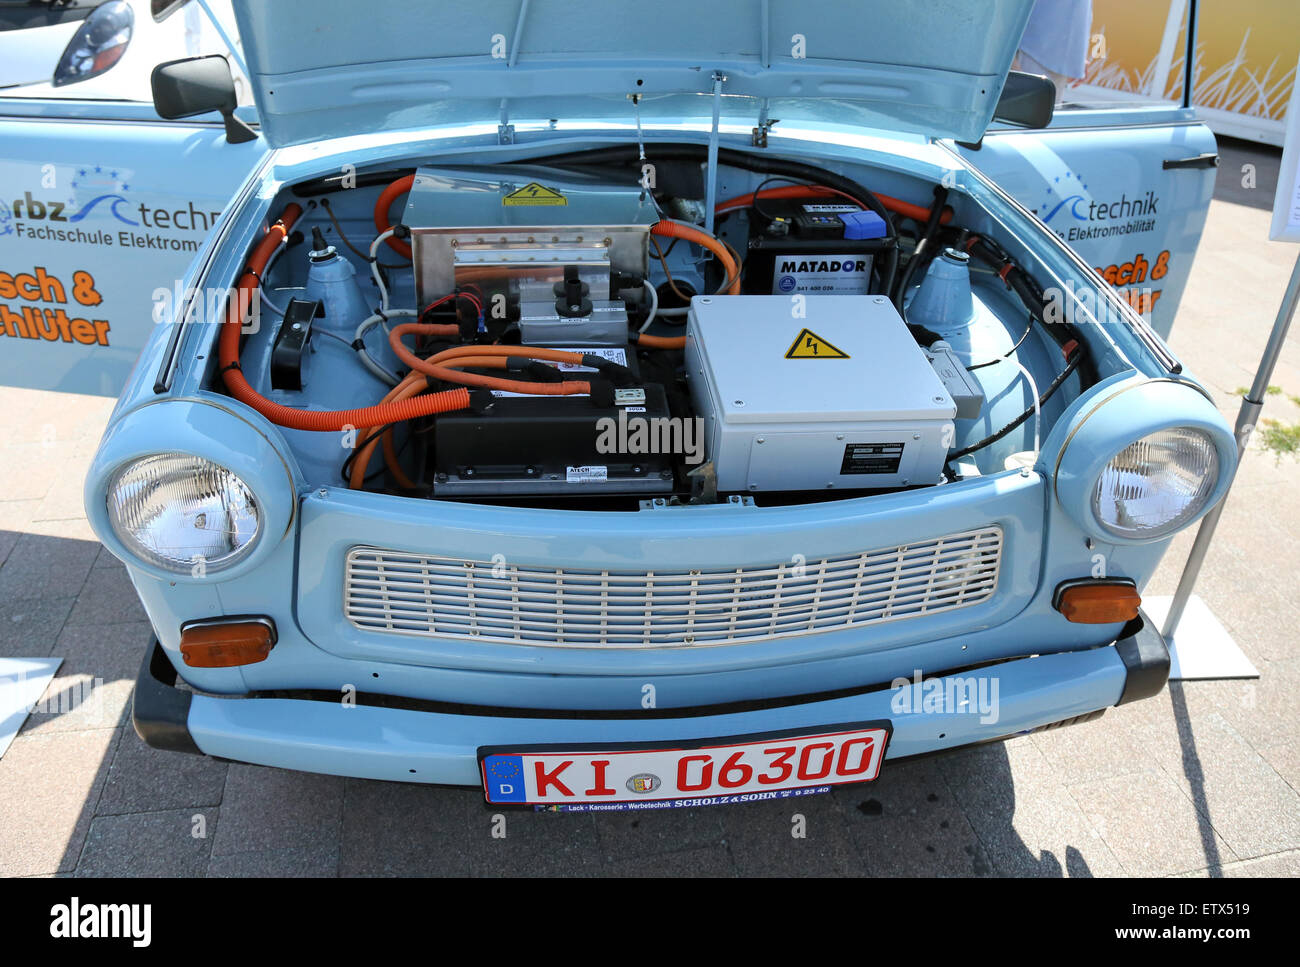 list germany electric motor in a trabant 601 stock photo. Black Bedroom Furniture Sets. Home Design Ideas